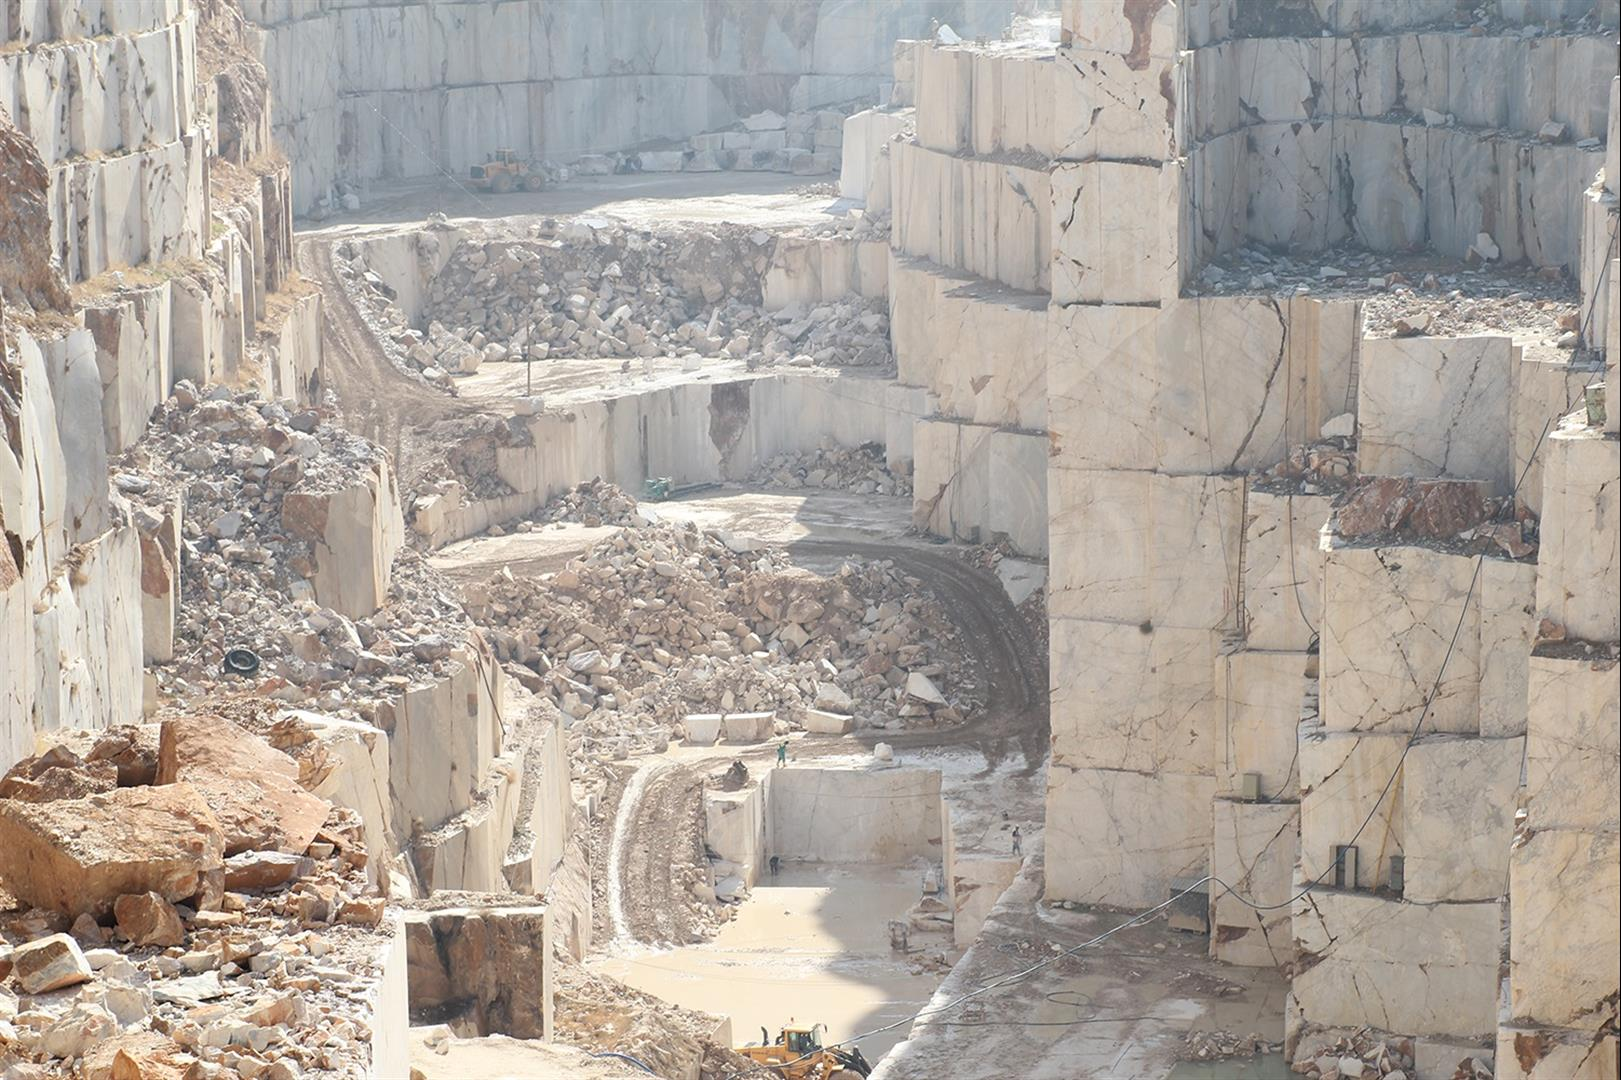 Afyon White Marble Quarry